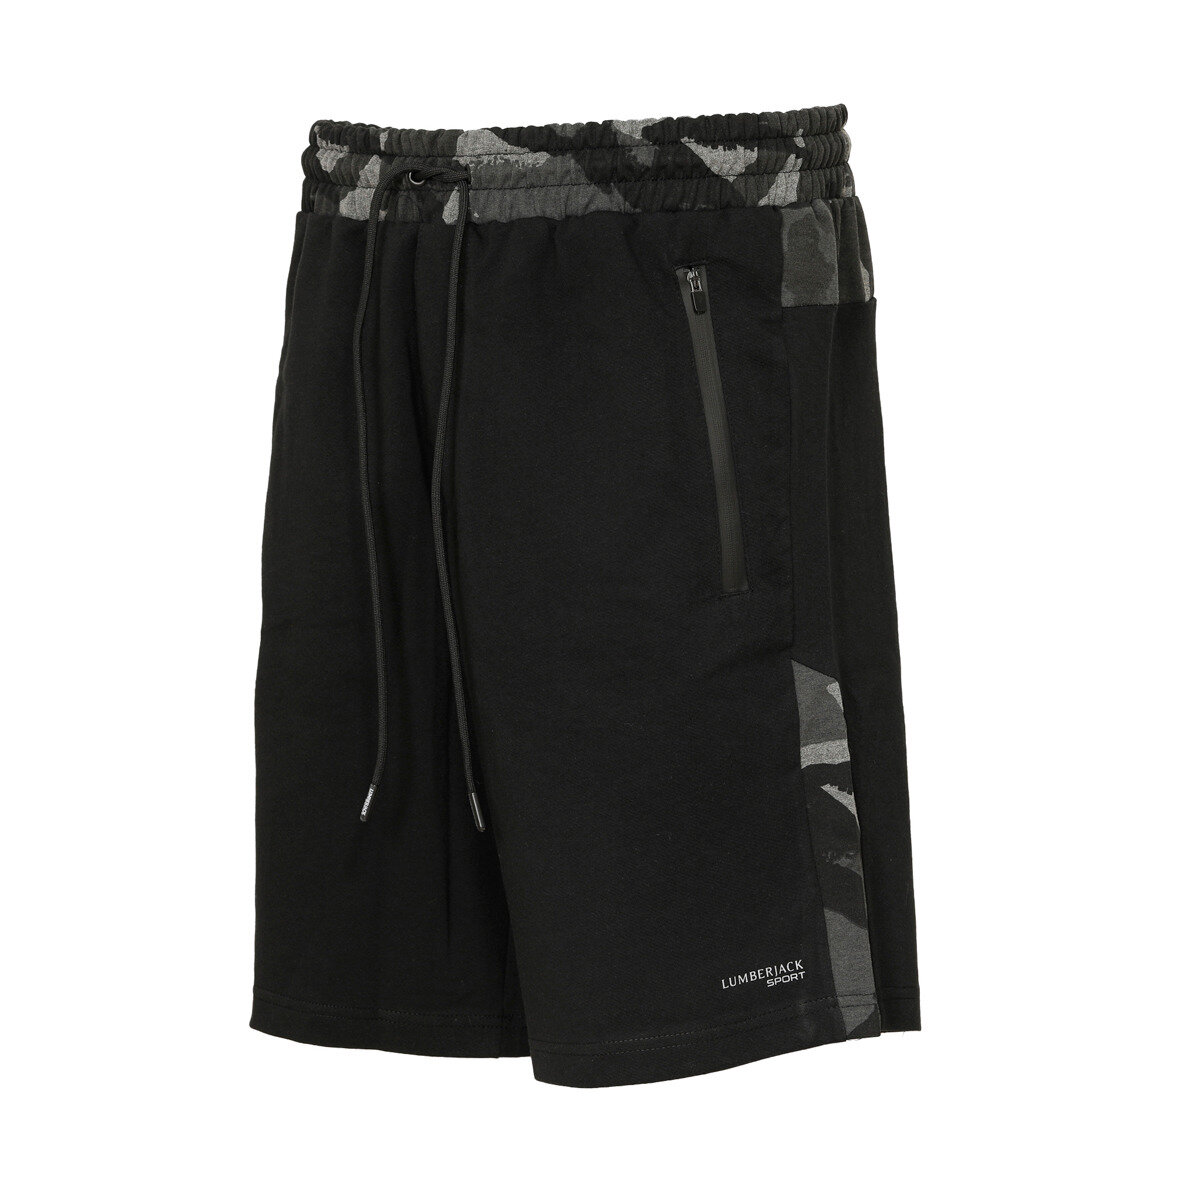 FLO M-1678 ALBERTA SORT Black Male Shorts LUMBERJACK